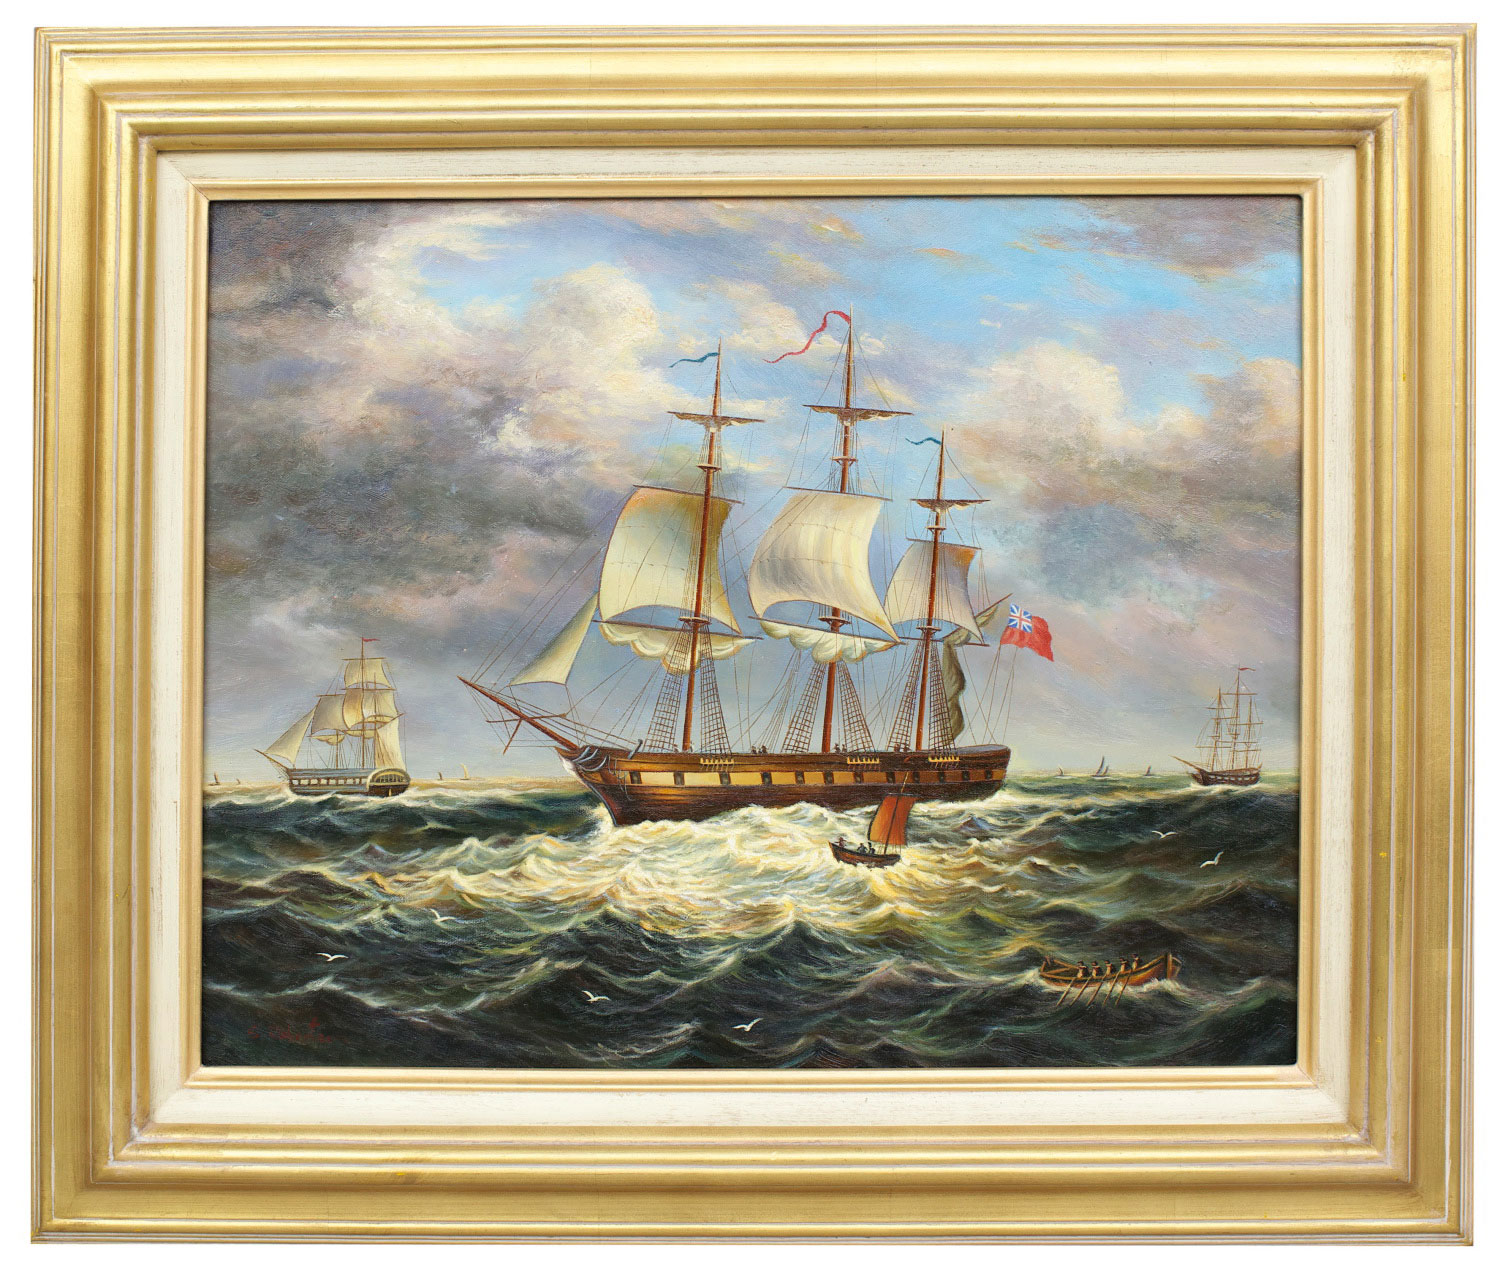 Sailing ship in Strong wind, framed oil painting